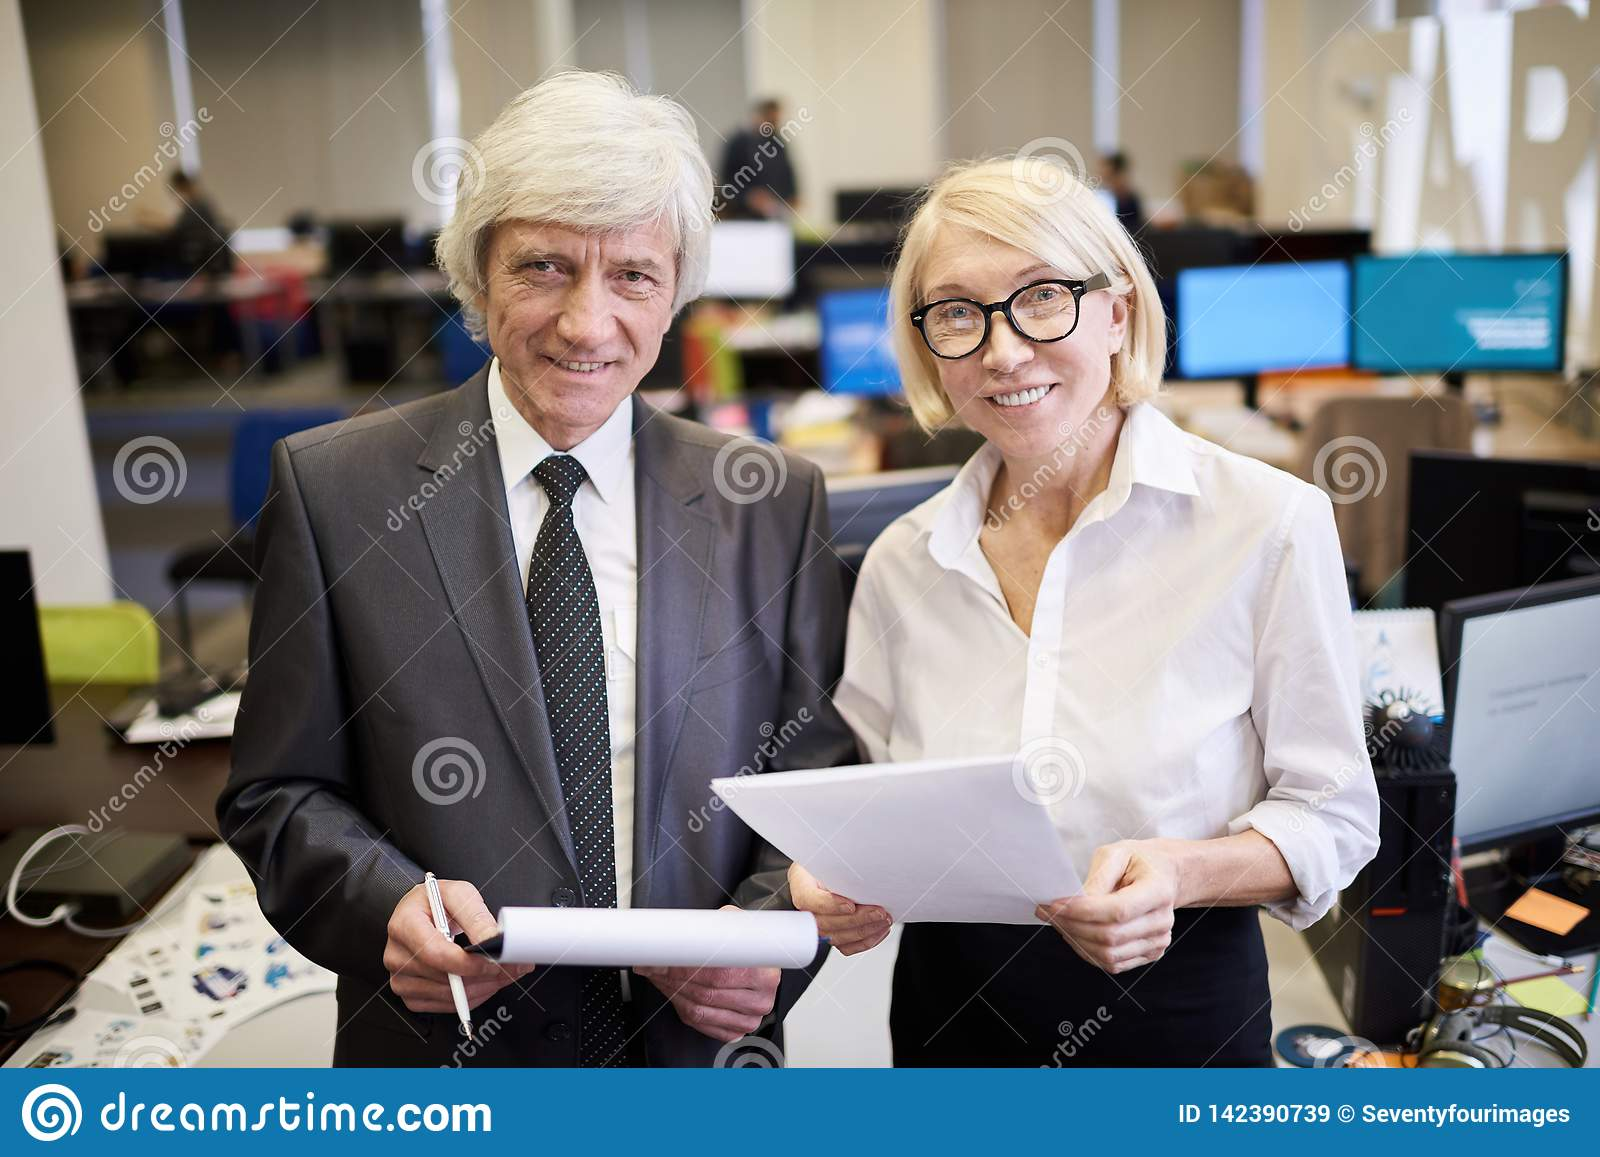 Two Mature Executives Posing in Office